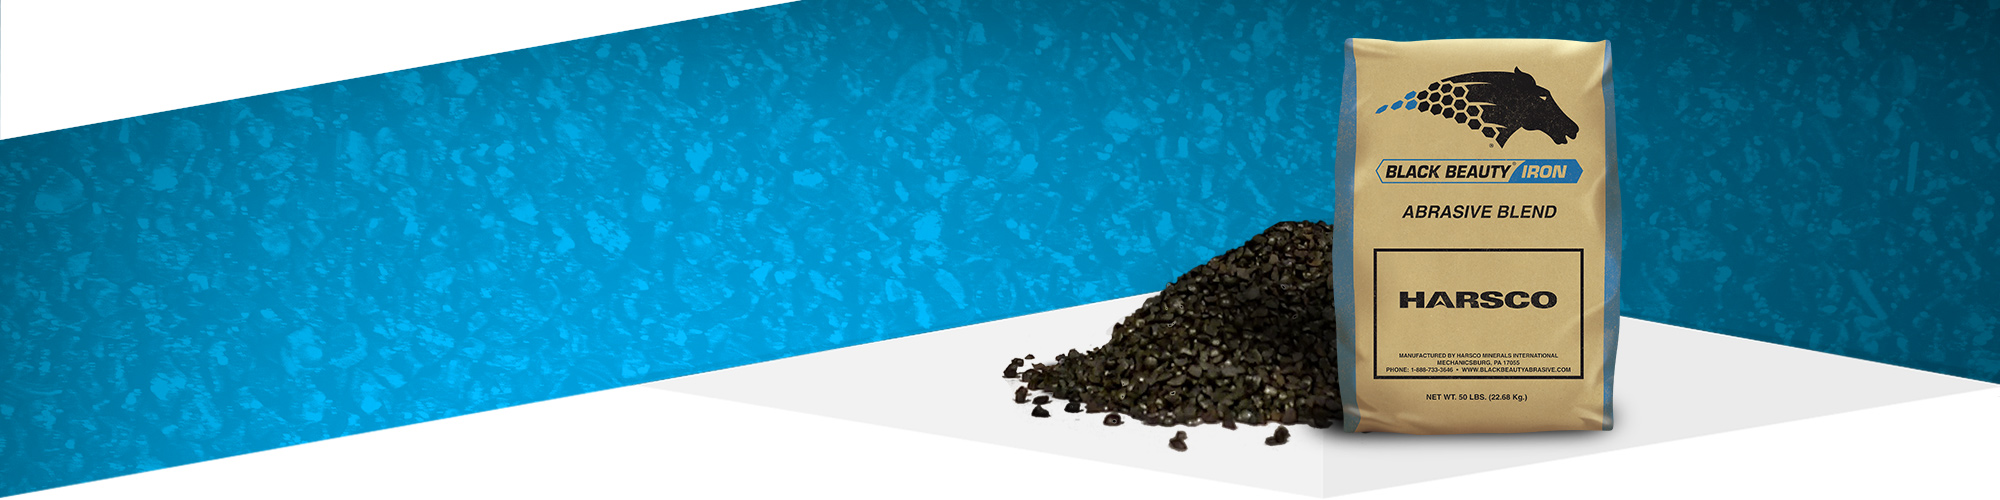 BLACK BEAUTY®IRON Abrasives